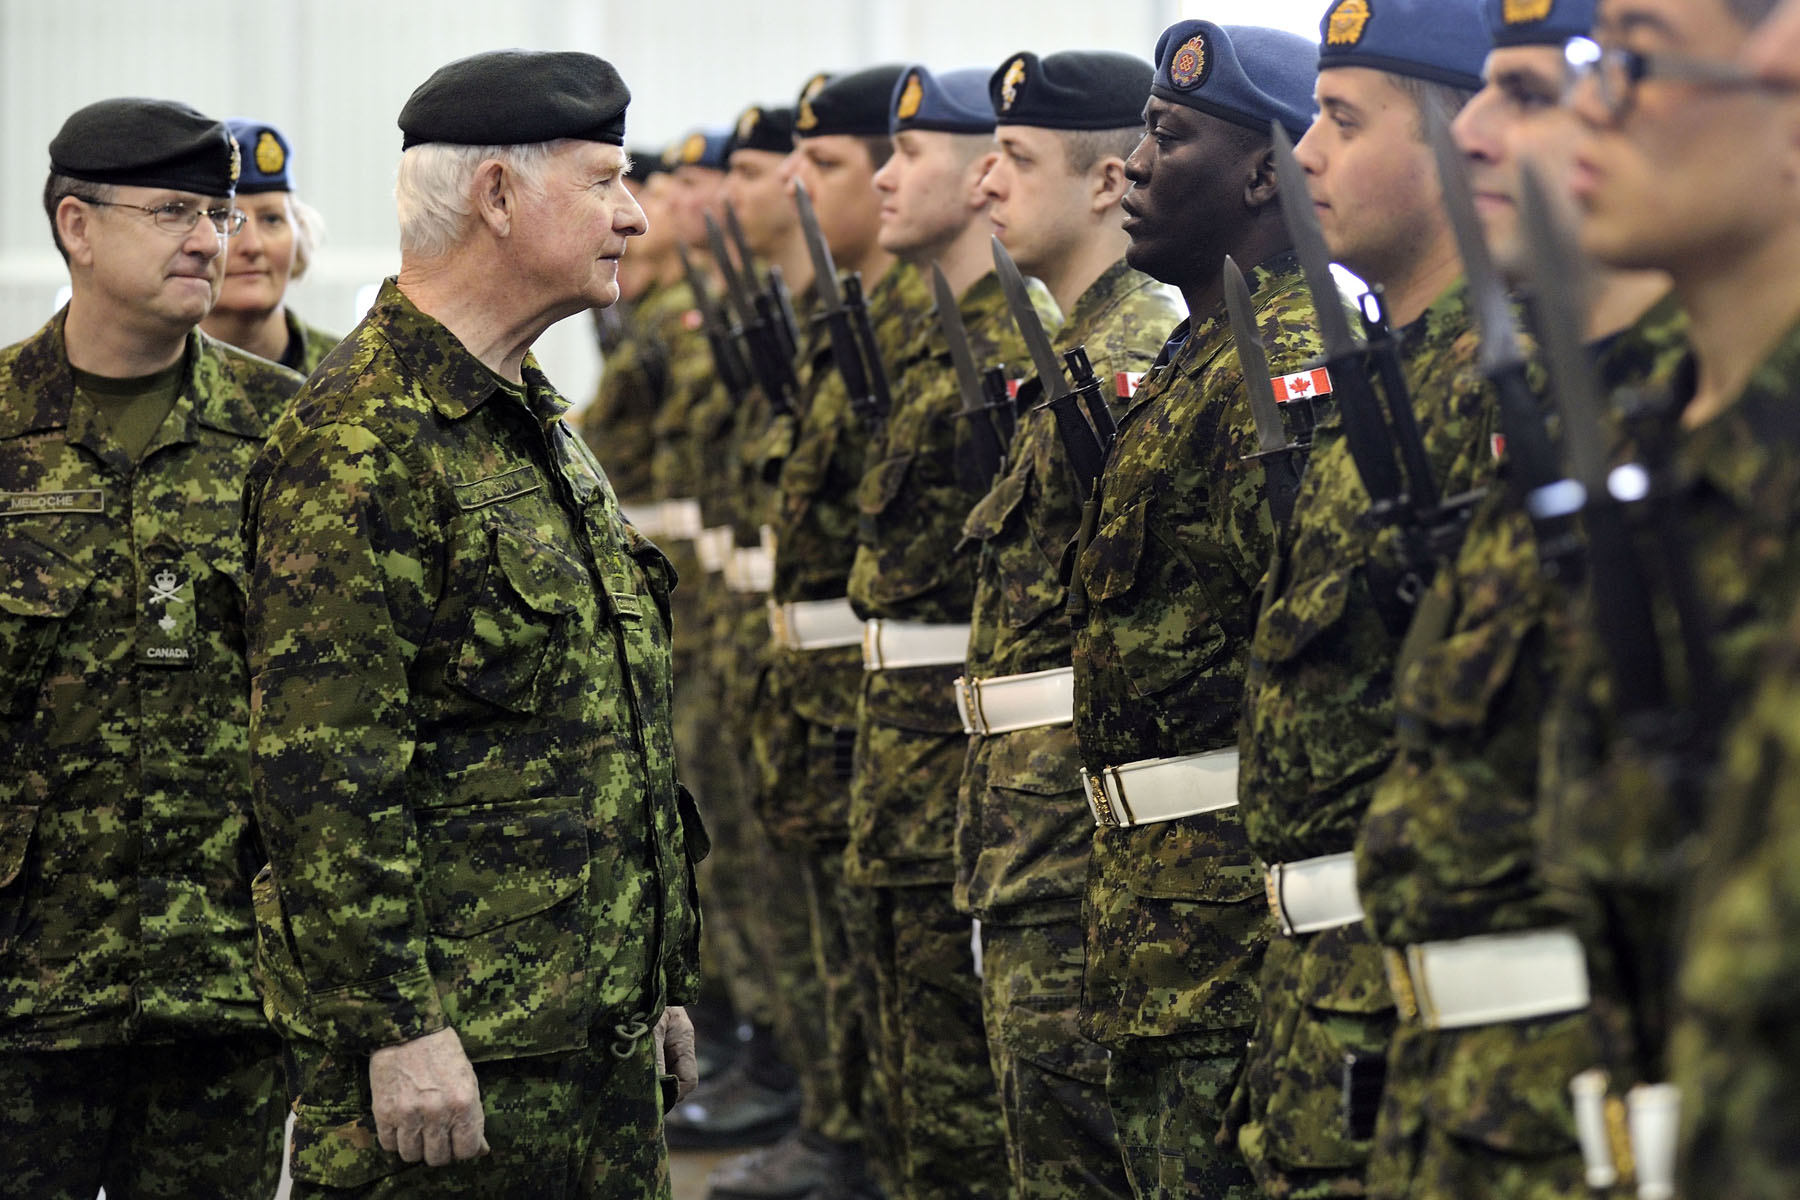 As Commander-in-Chief of Canada, His Excellency and Brigadier-General Louis Meloche, Commander Canadian Forces Recruiting Group Headquarters, inspected the honour guard upon his arrival at CFB Borden.